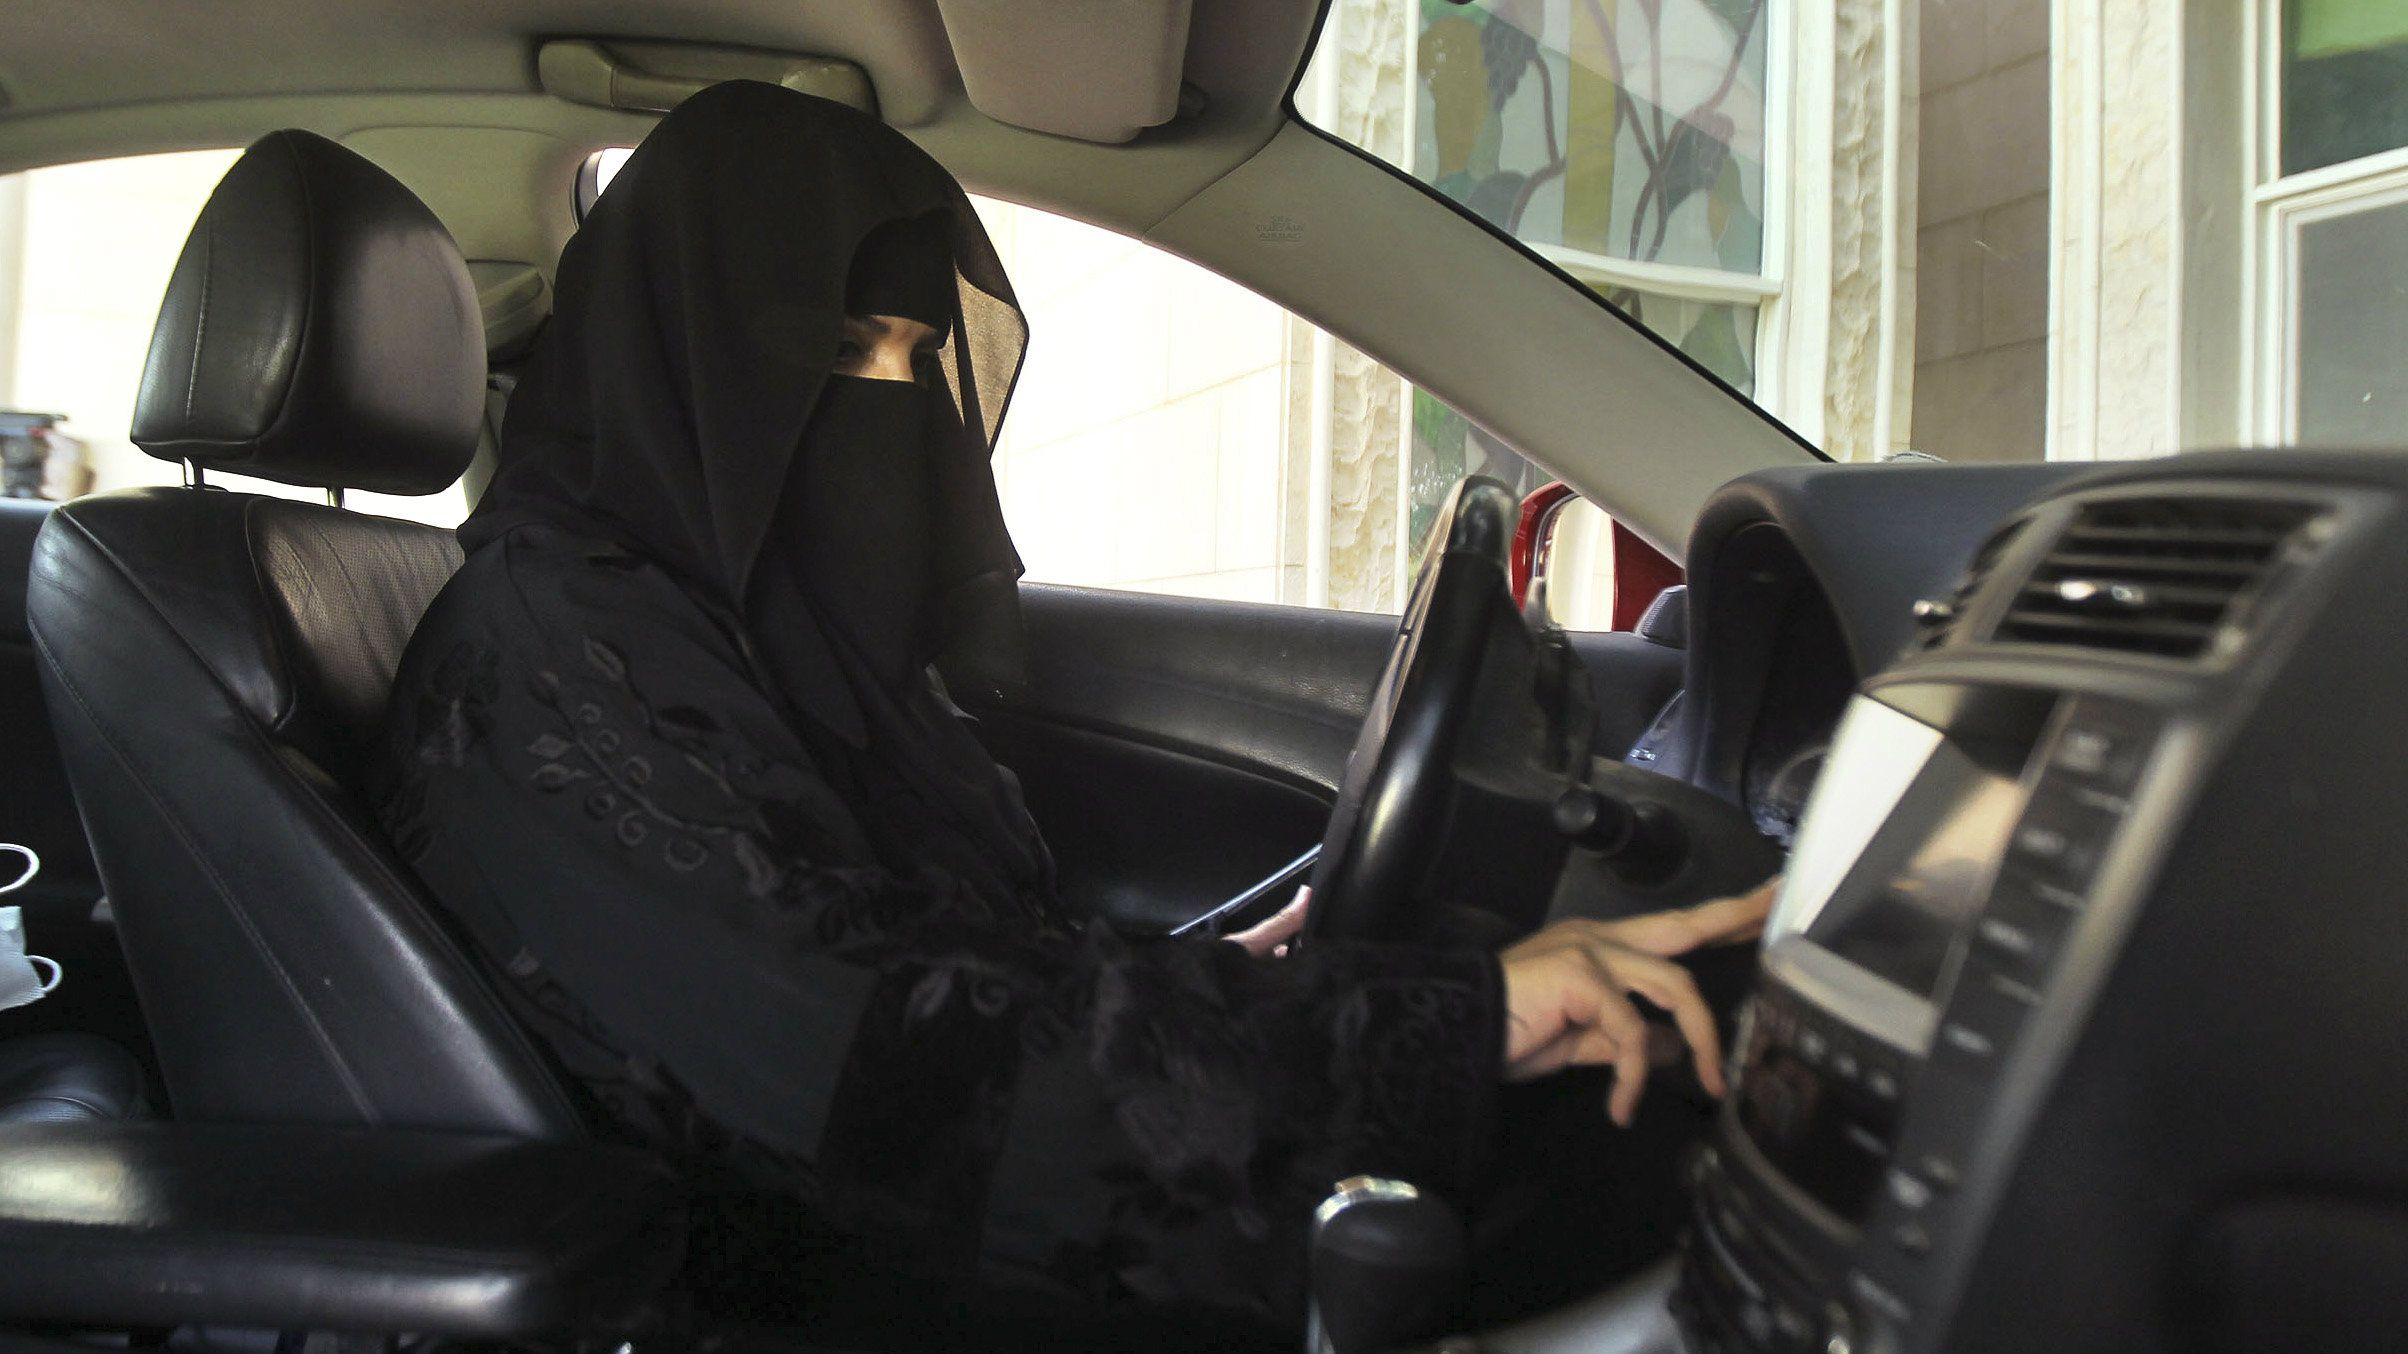 Saudi issues Royal decree allowing women to drive